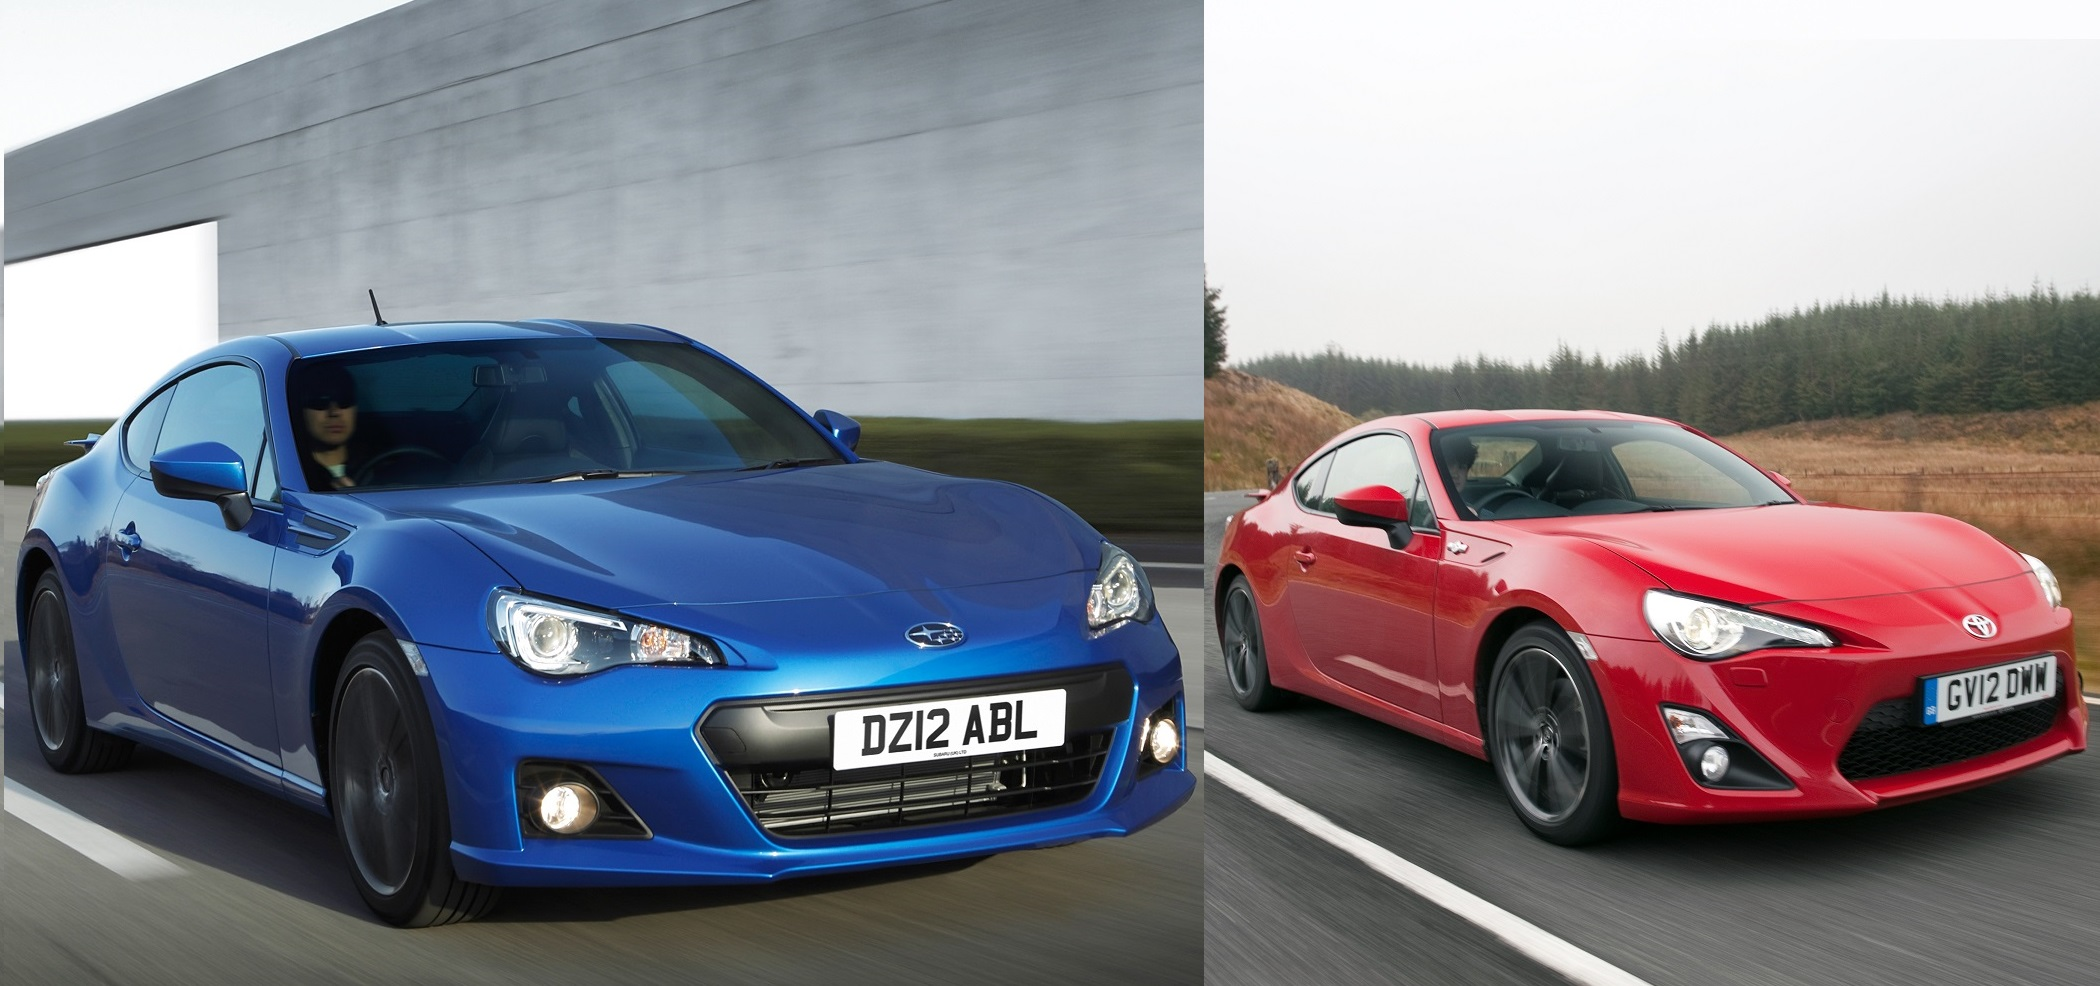 Frs Vs Brz Vs Gt86 New Car Release Date And Review 2018 Amanda Felicia